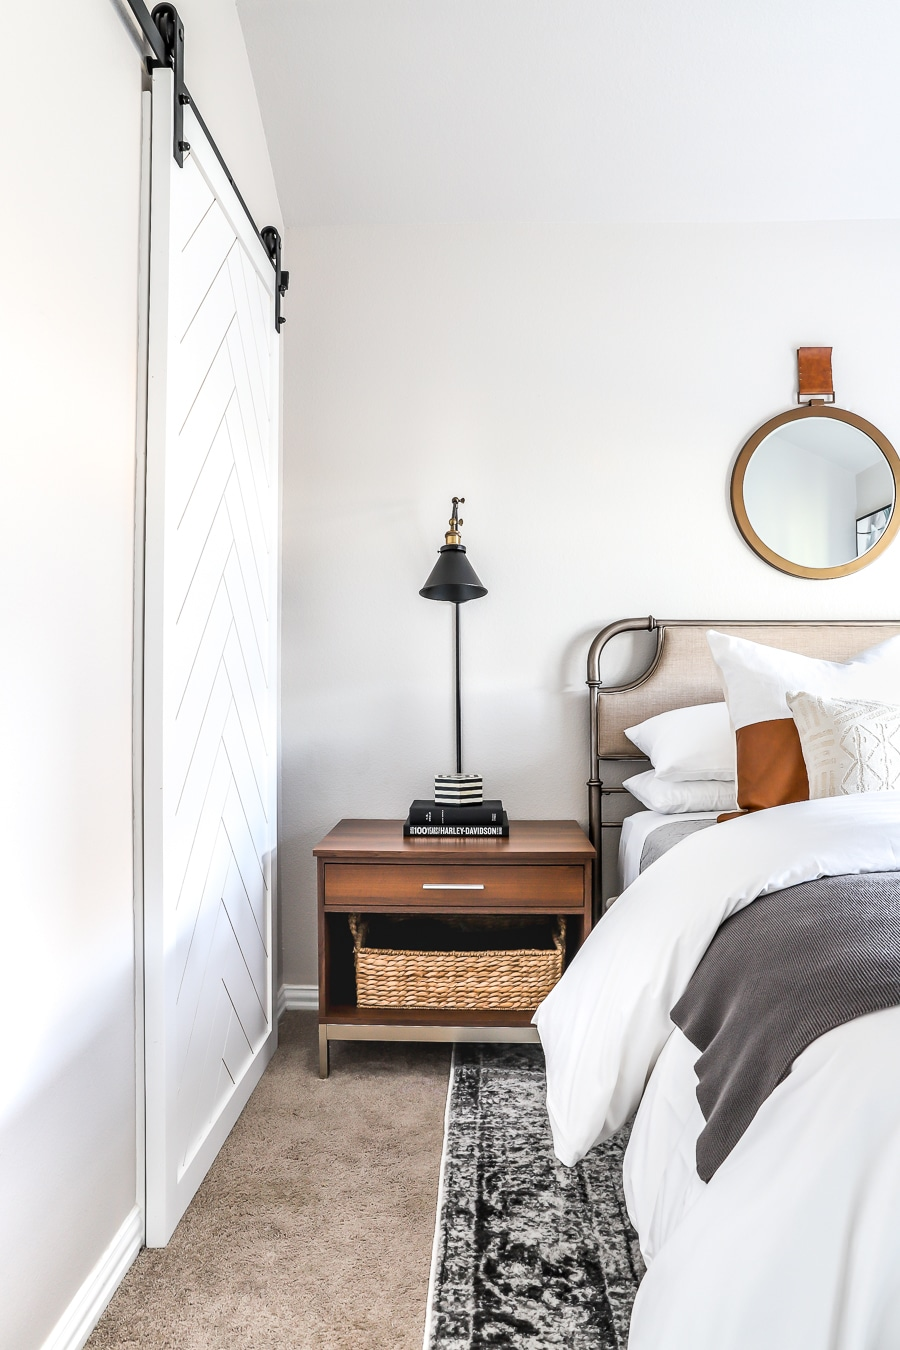 Guest bedroom refresh with the new home decor line from The Home Depot